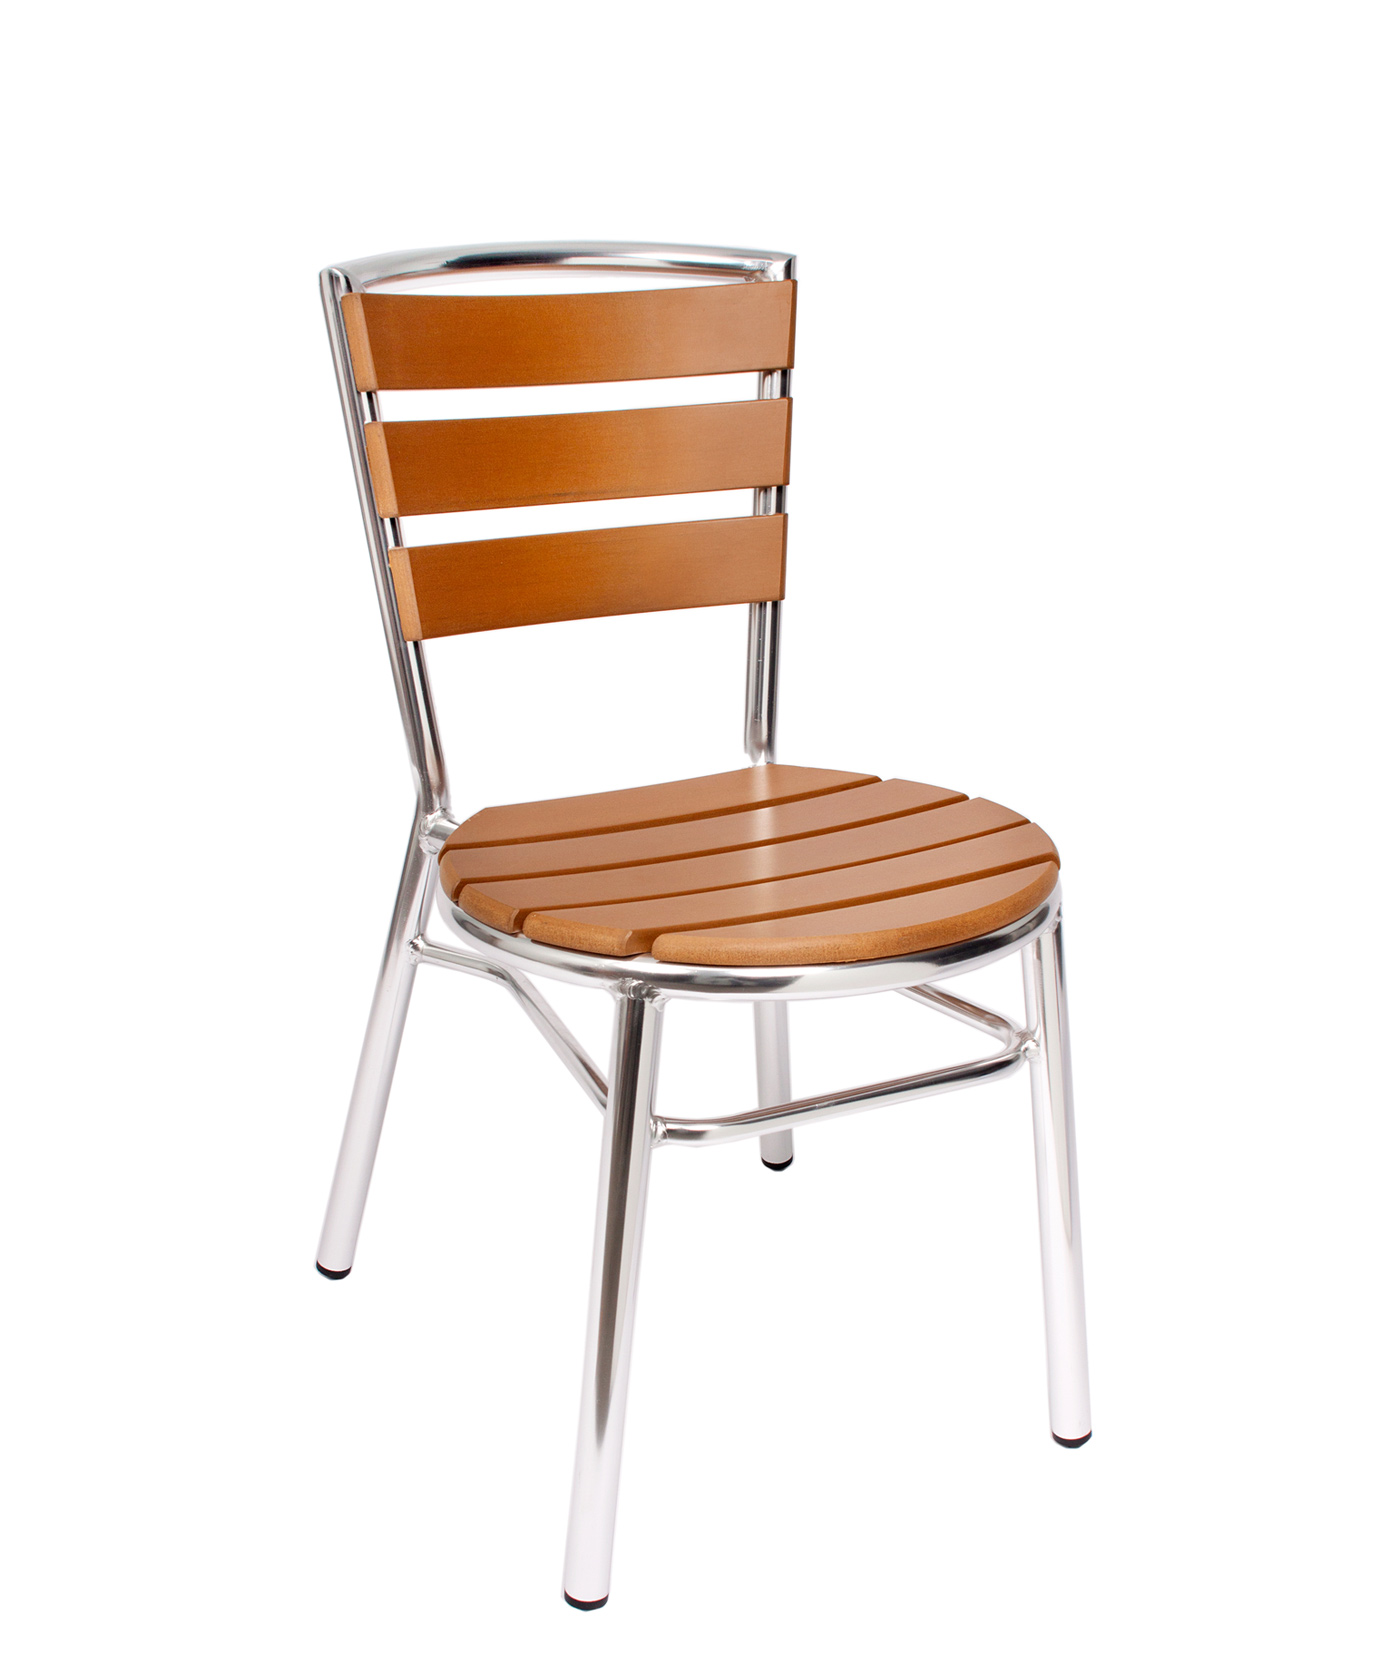 Norden outdoor stacking side chair with synthetic teak